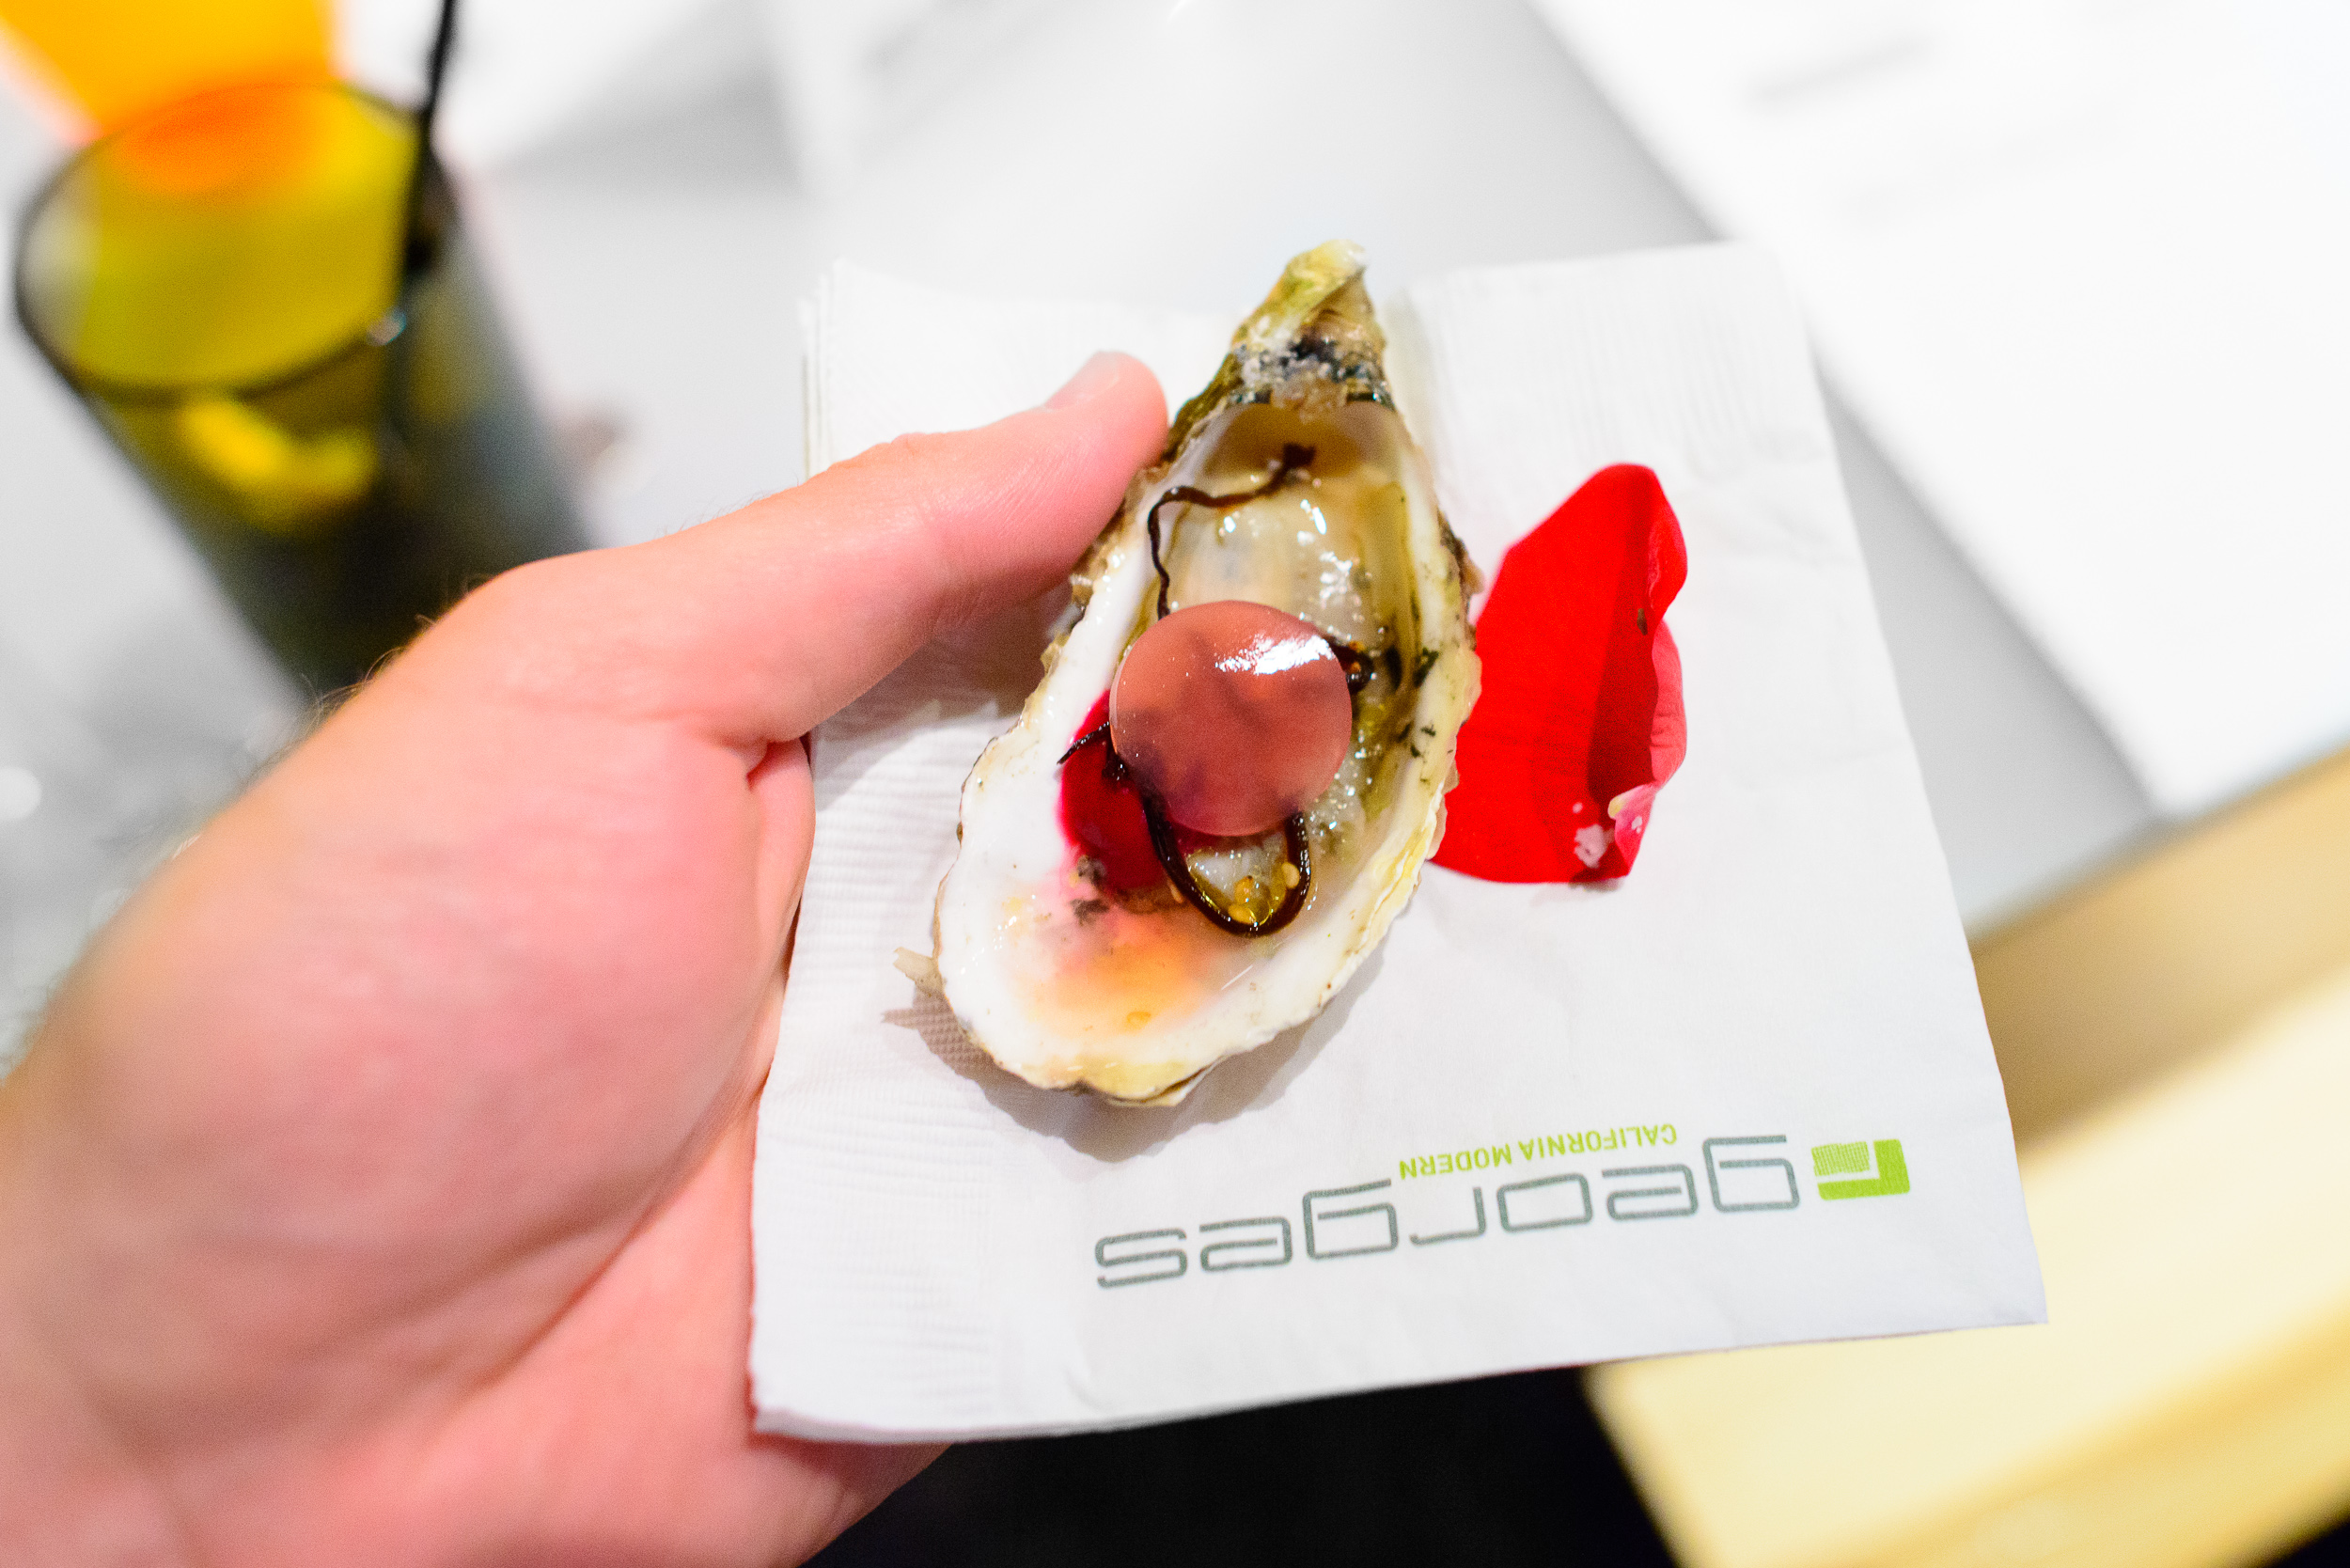 Snack 1: Oyster, rose, smoked beet. By Trey Foshee.